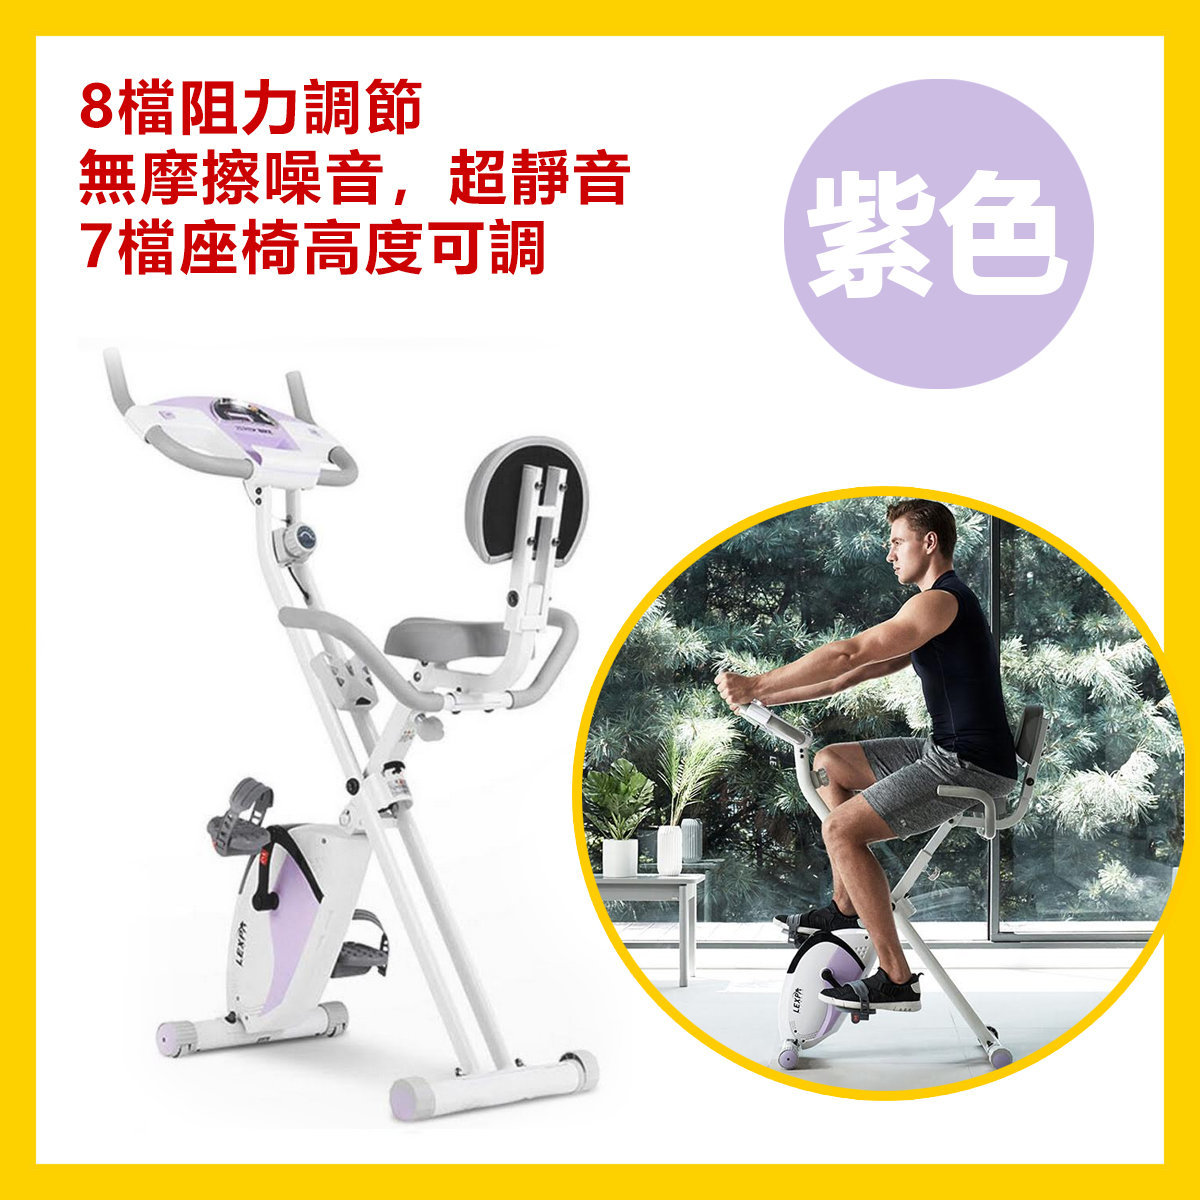 Foldable Ultra Quiet Magnetron Exercise Bike - YA150 (Purple) (Free Delivery)